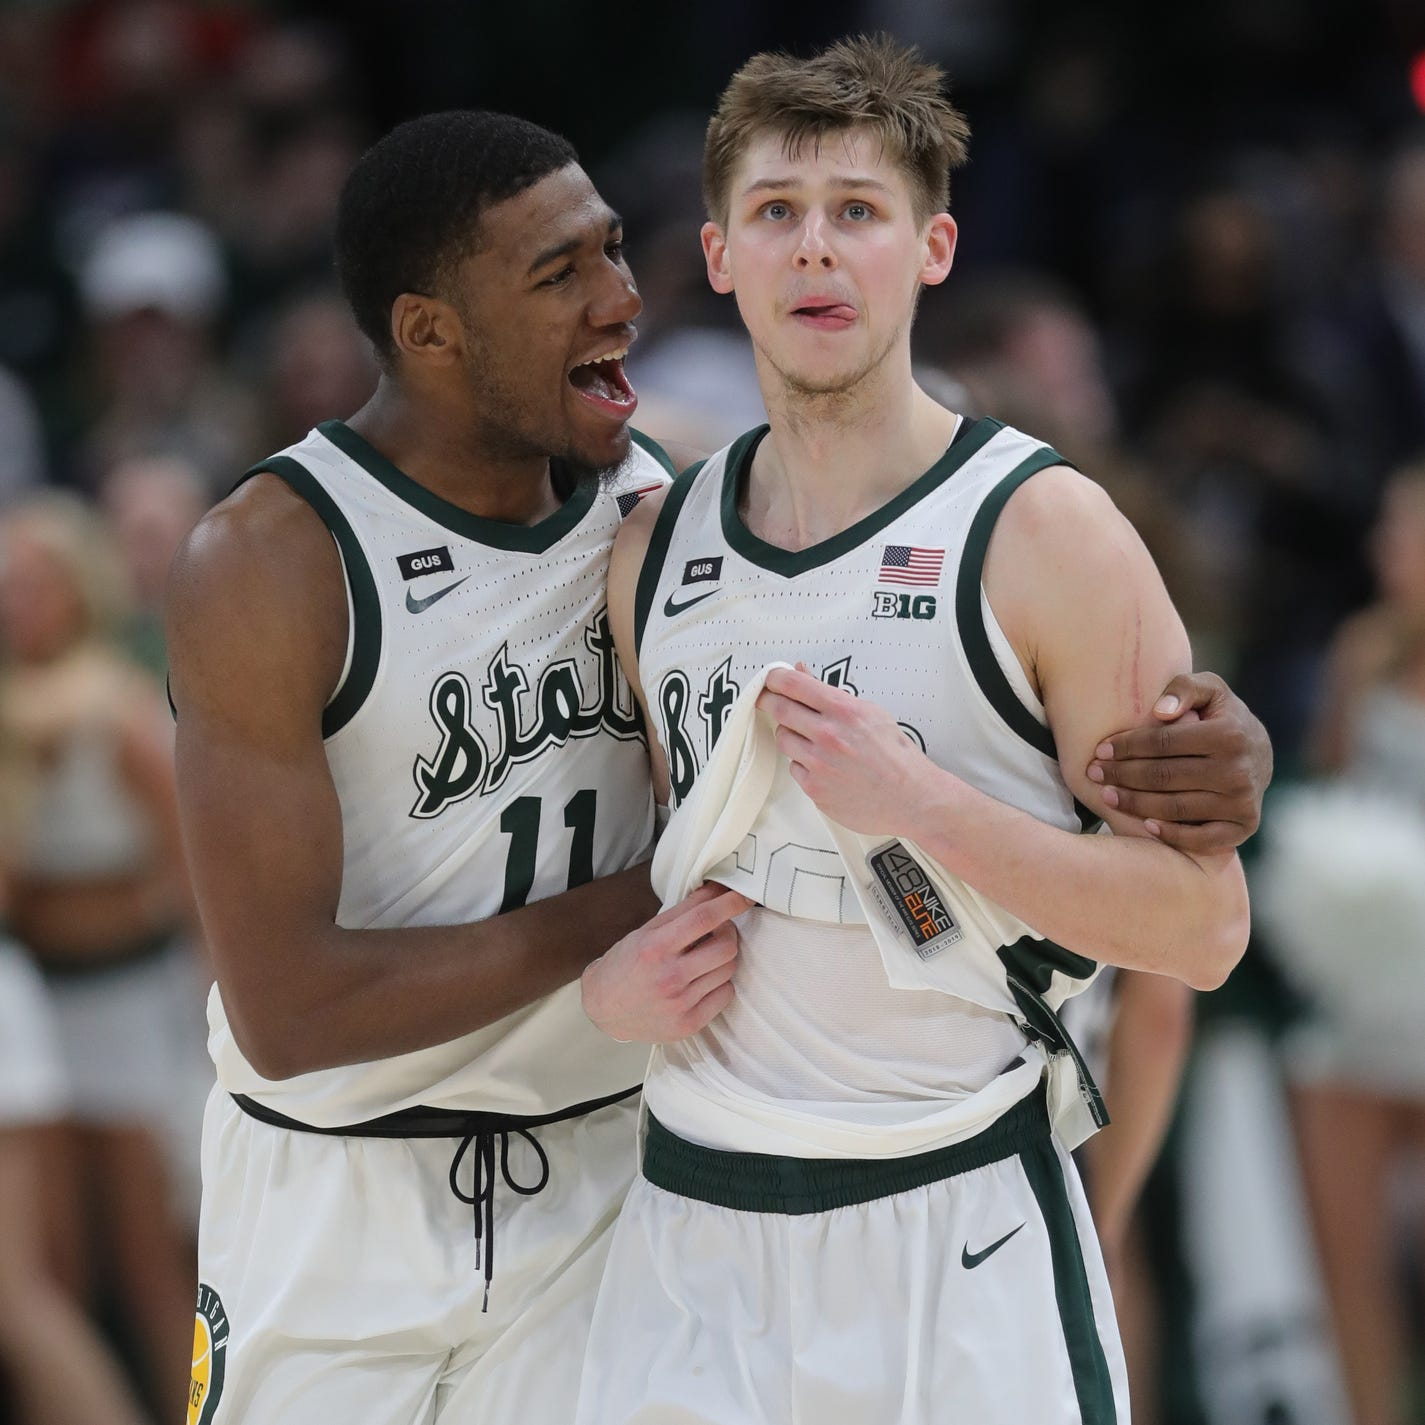 Michigan State's Aaron Henry rises to challenge vs. Big Ten freshman of year